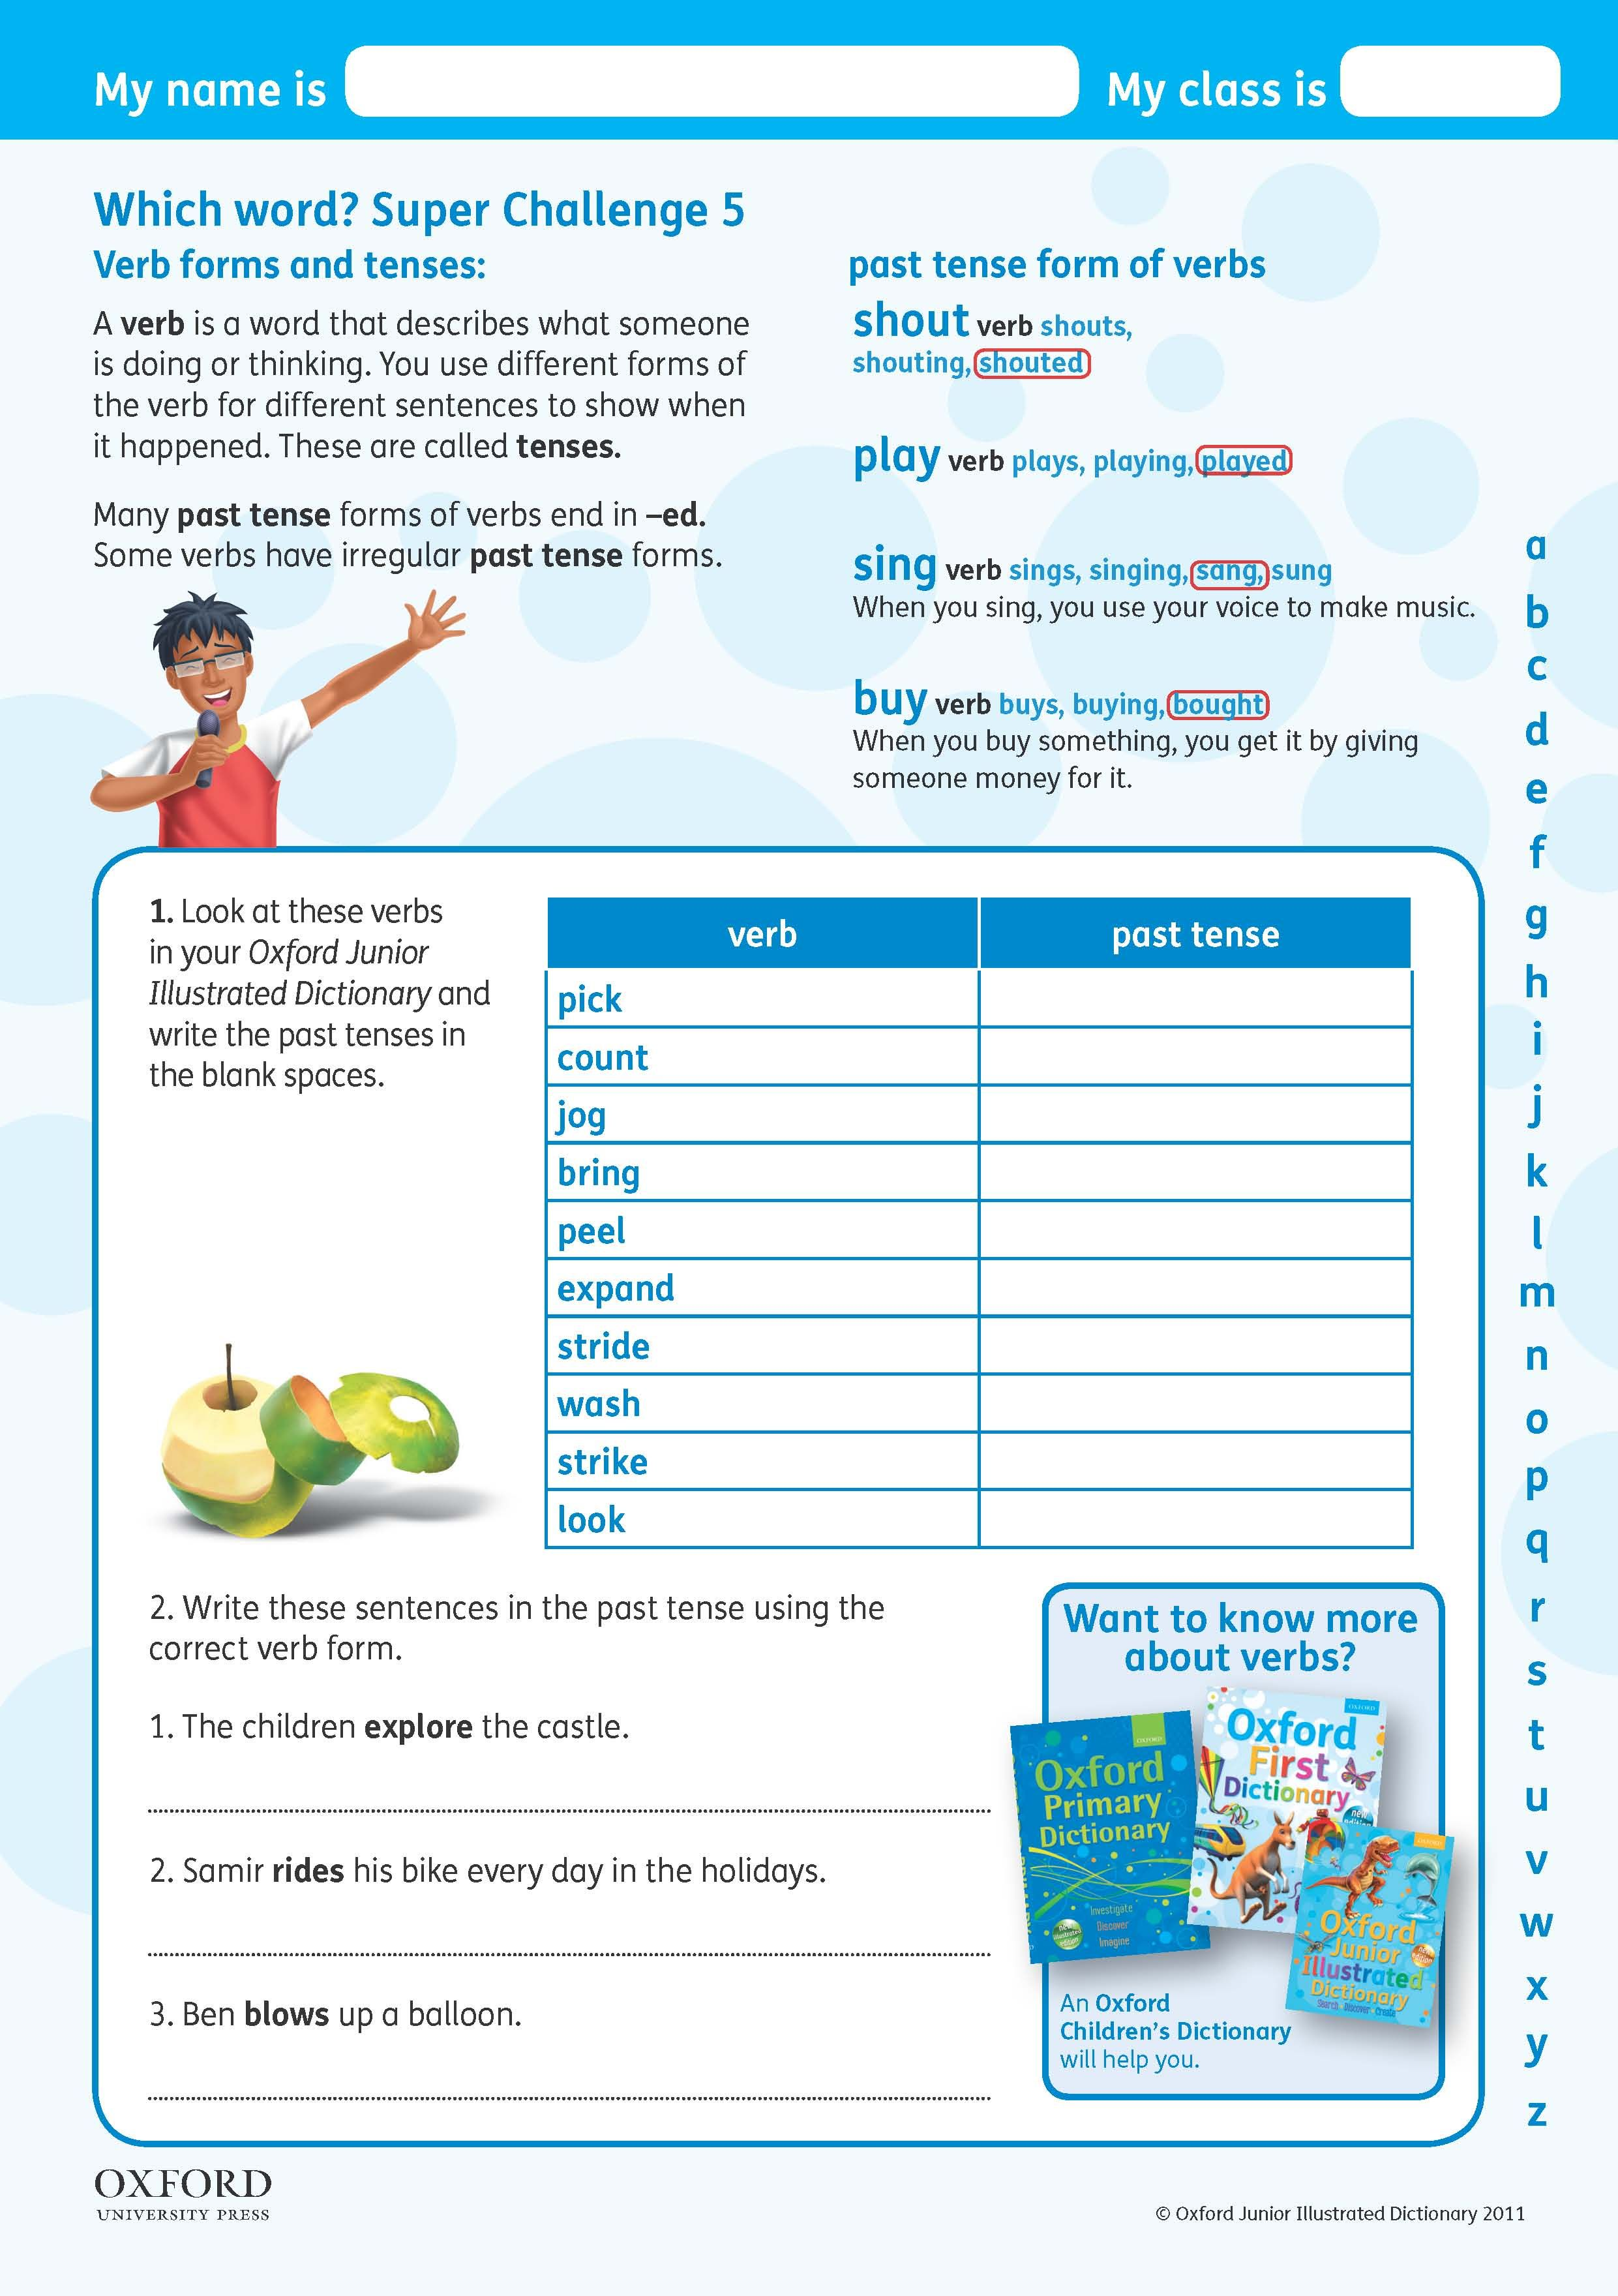 Identify Verbs In A Sentence Worksheet Download Your Free Oxford Junior Illustrated Dictionary Super  Student Worksheet Brain Anatomy Activity 1a Answers Pdf with Prek Printable Worksheets Pdf Download Your Free Oxford Junior Illustrated Dictionary Super Challenge  Worksheet Look At These Verbs In Subject   Predicate Worksheets Word